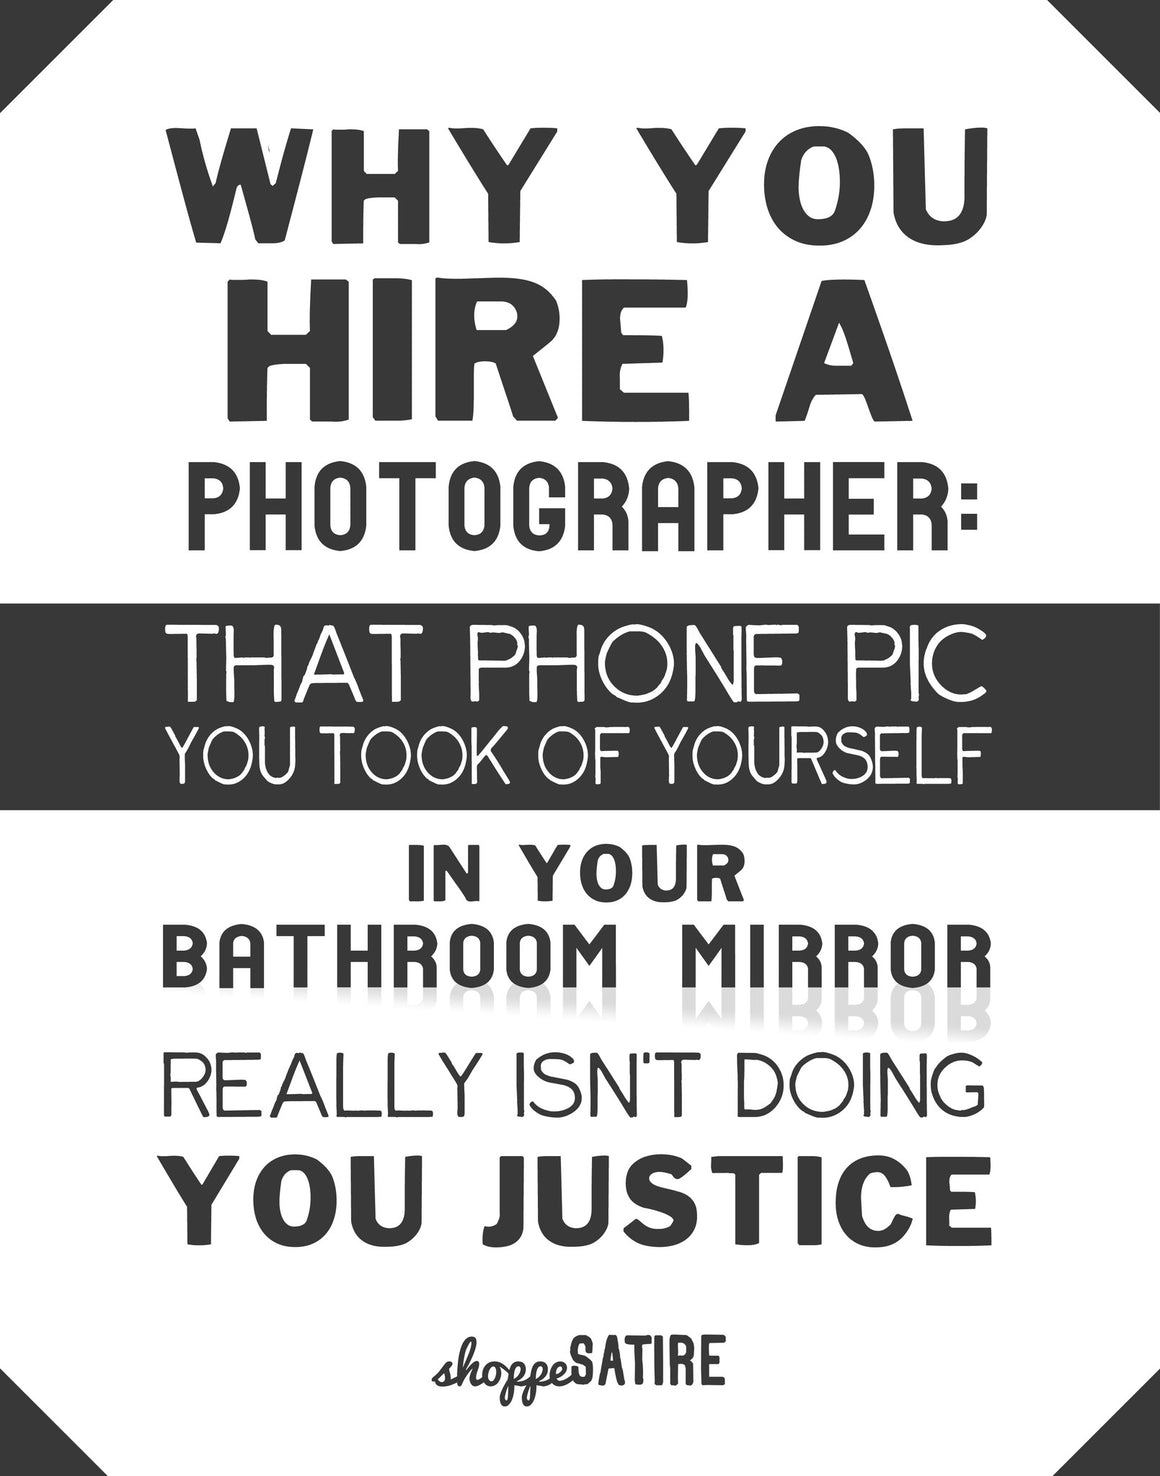 Shoppe Satire ~ Why Hire A Photographer ~ Phone Pics